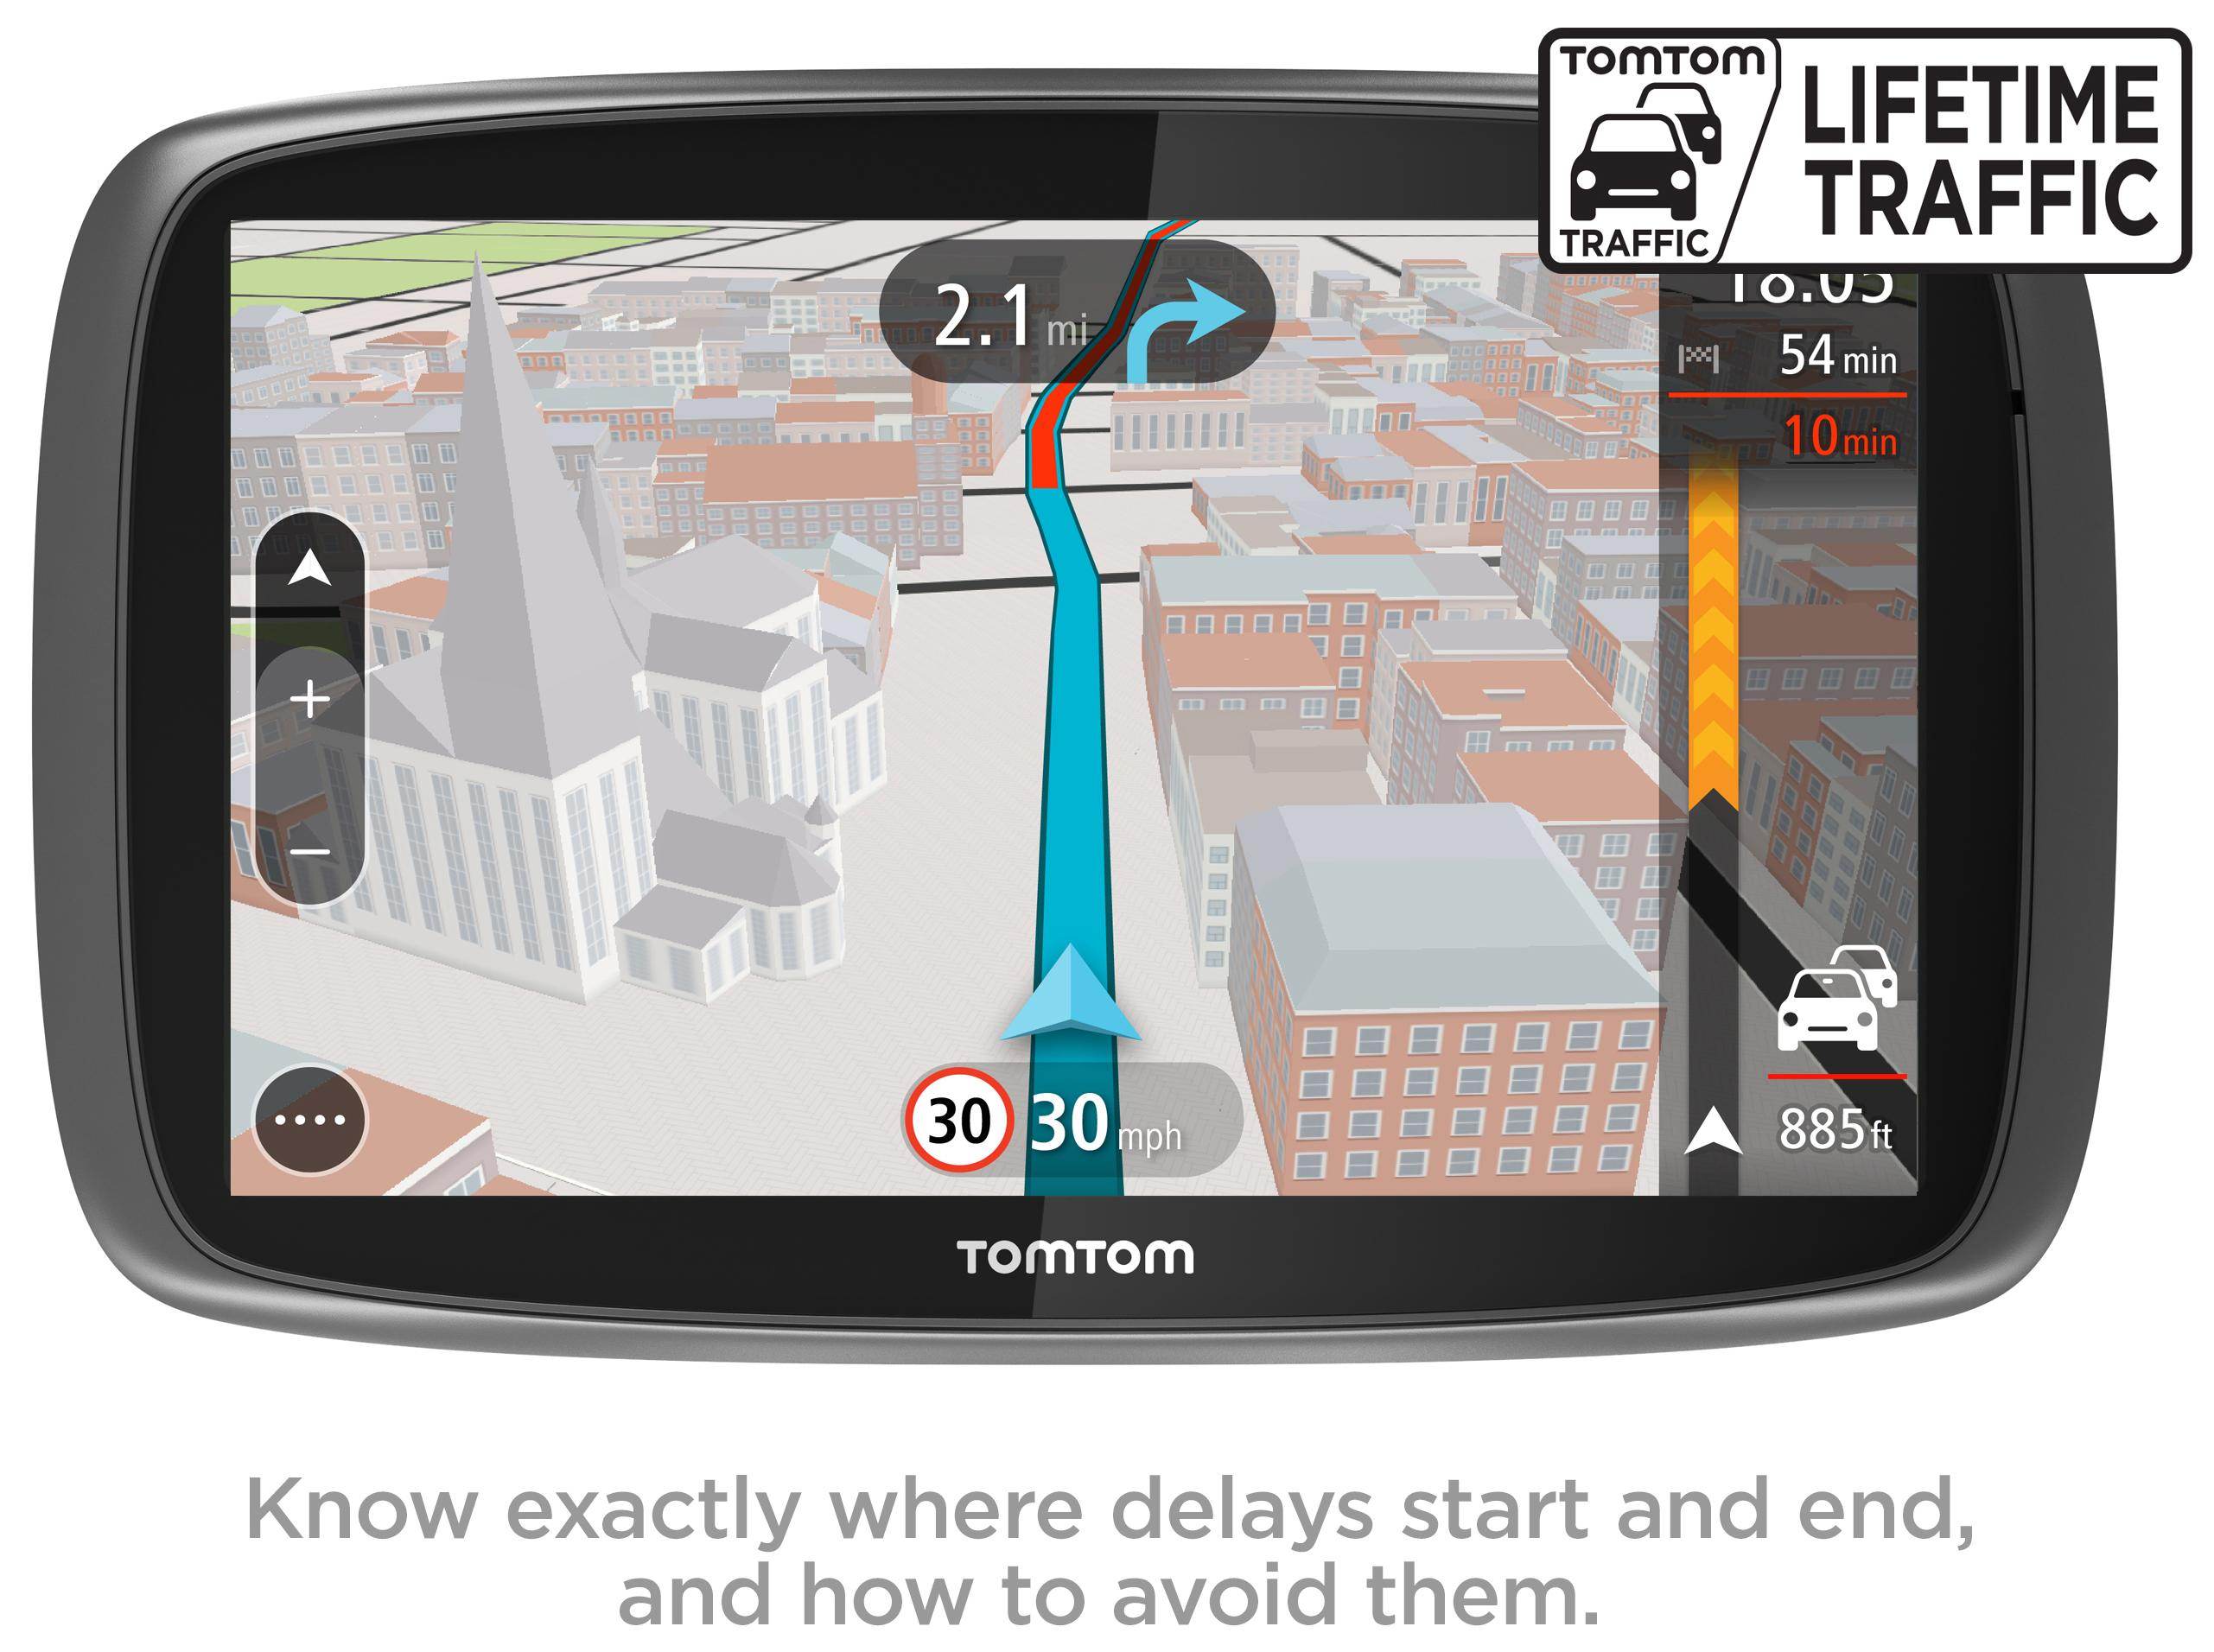 tomtom go 5100 5 car sat nav gps mydrive lifetime traffic. Black Bedroom Furniture Sets. Home Design Ideas